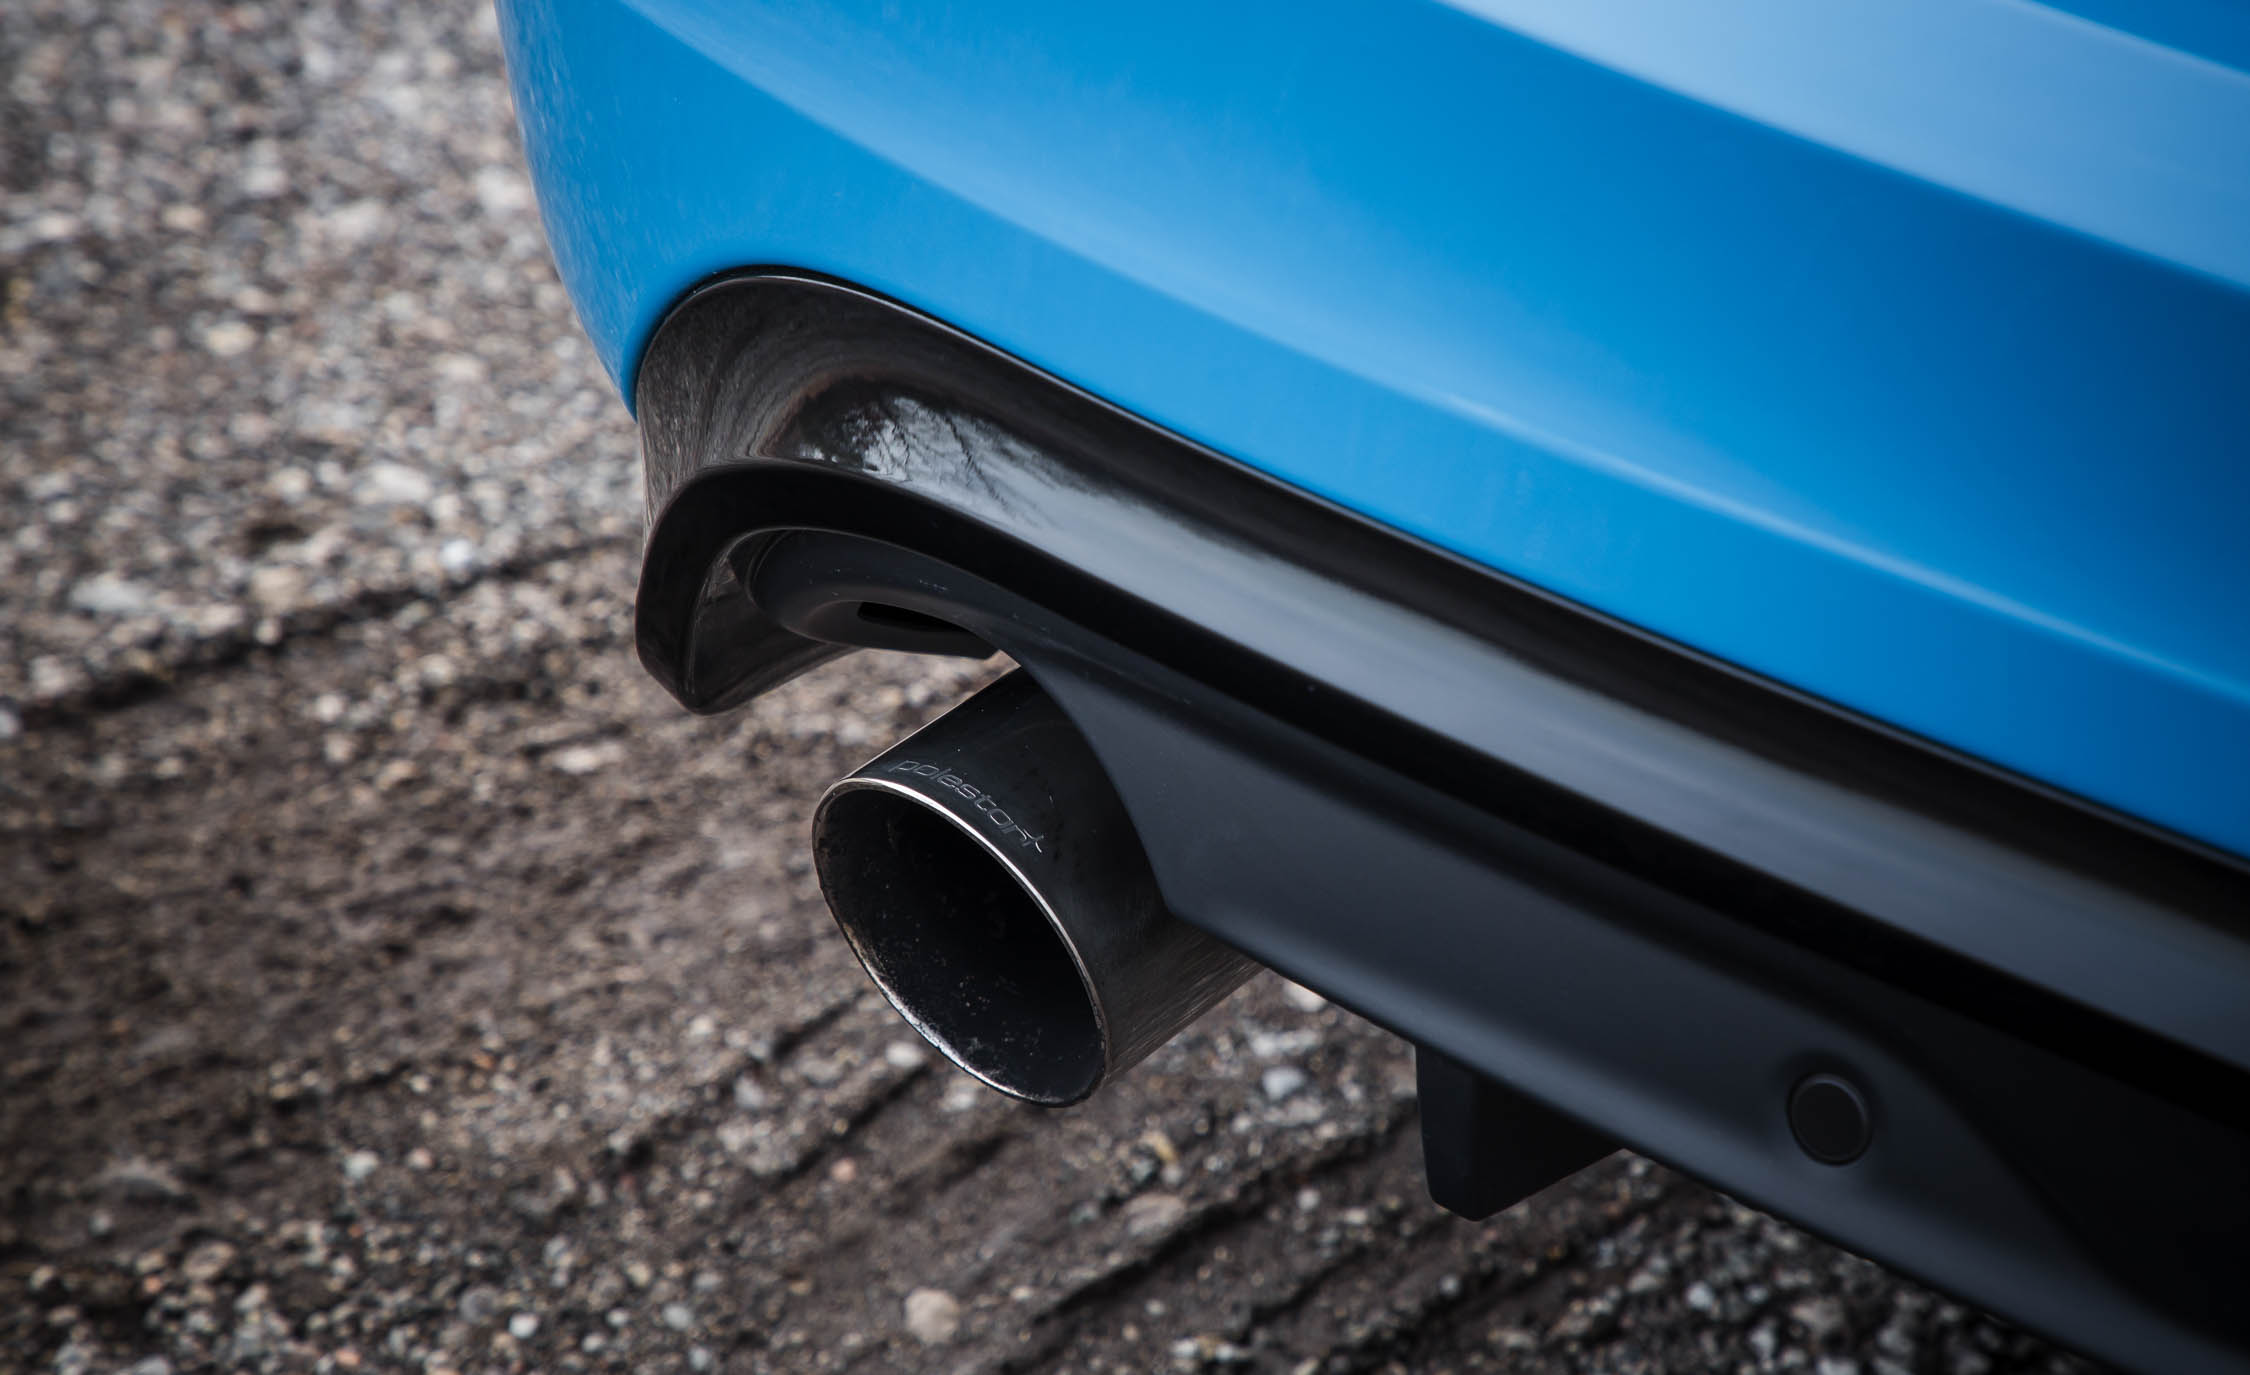 2017 Volvo V60 Polestar Exterior View Exhaust Pipe (View 25 of 53)